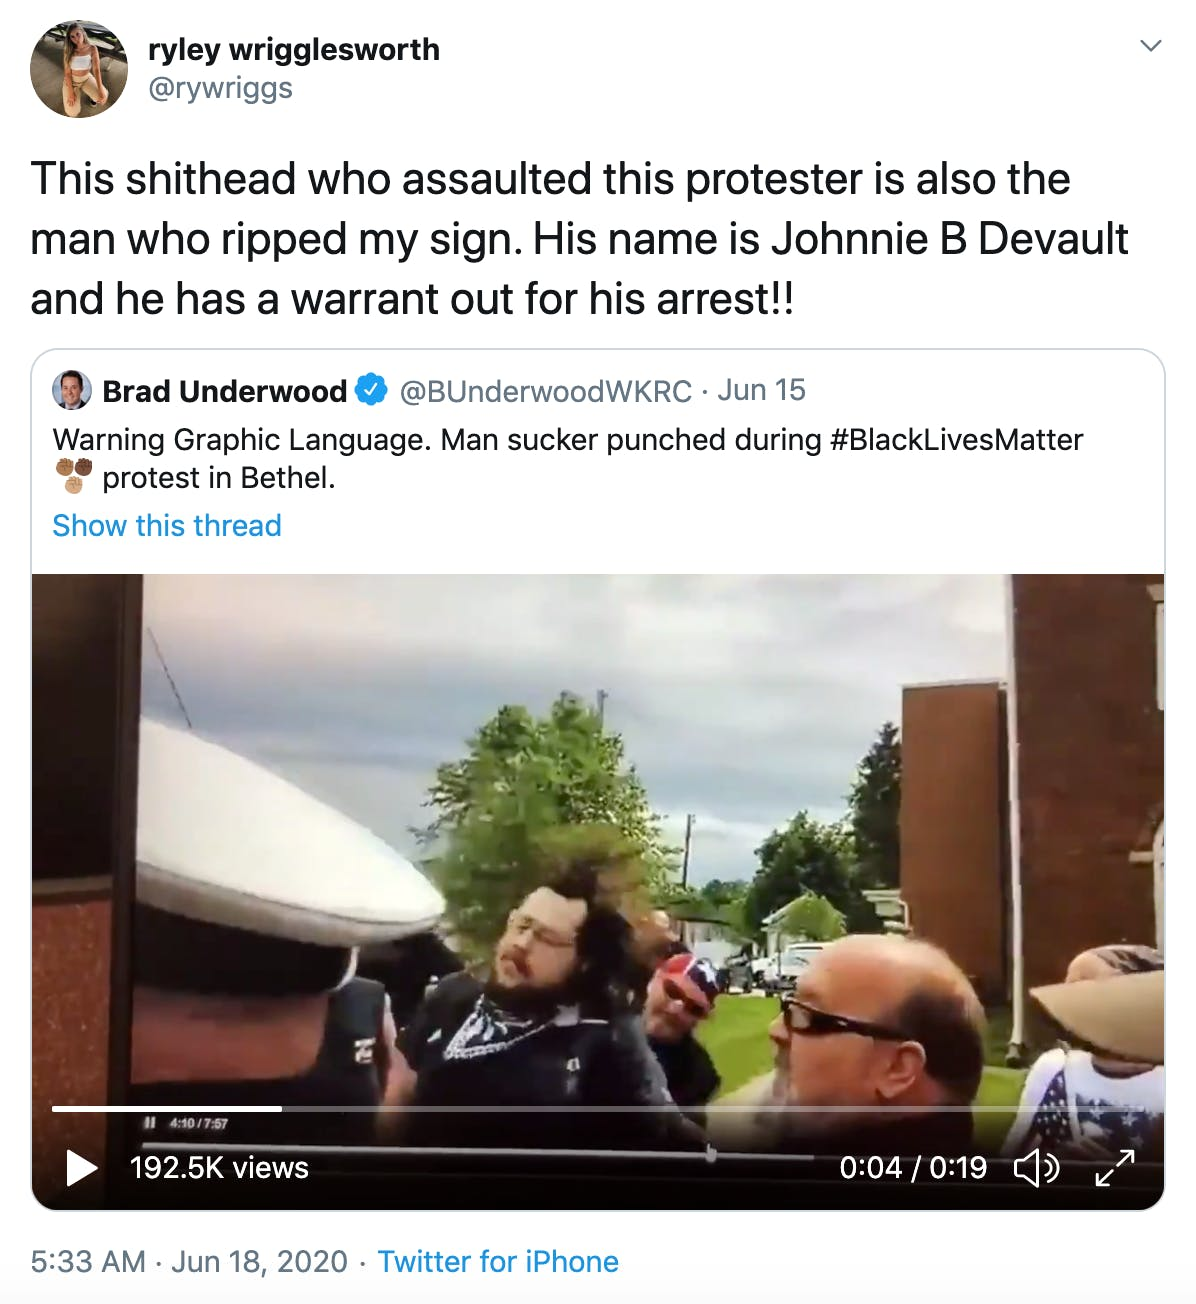 This shithead who assaulted this protester is also the man who ripped my sign. His name is Johnnie B Devault and he has a warrant out for his arrest!!